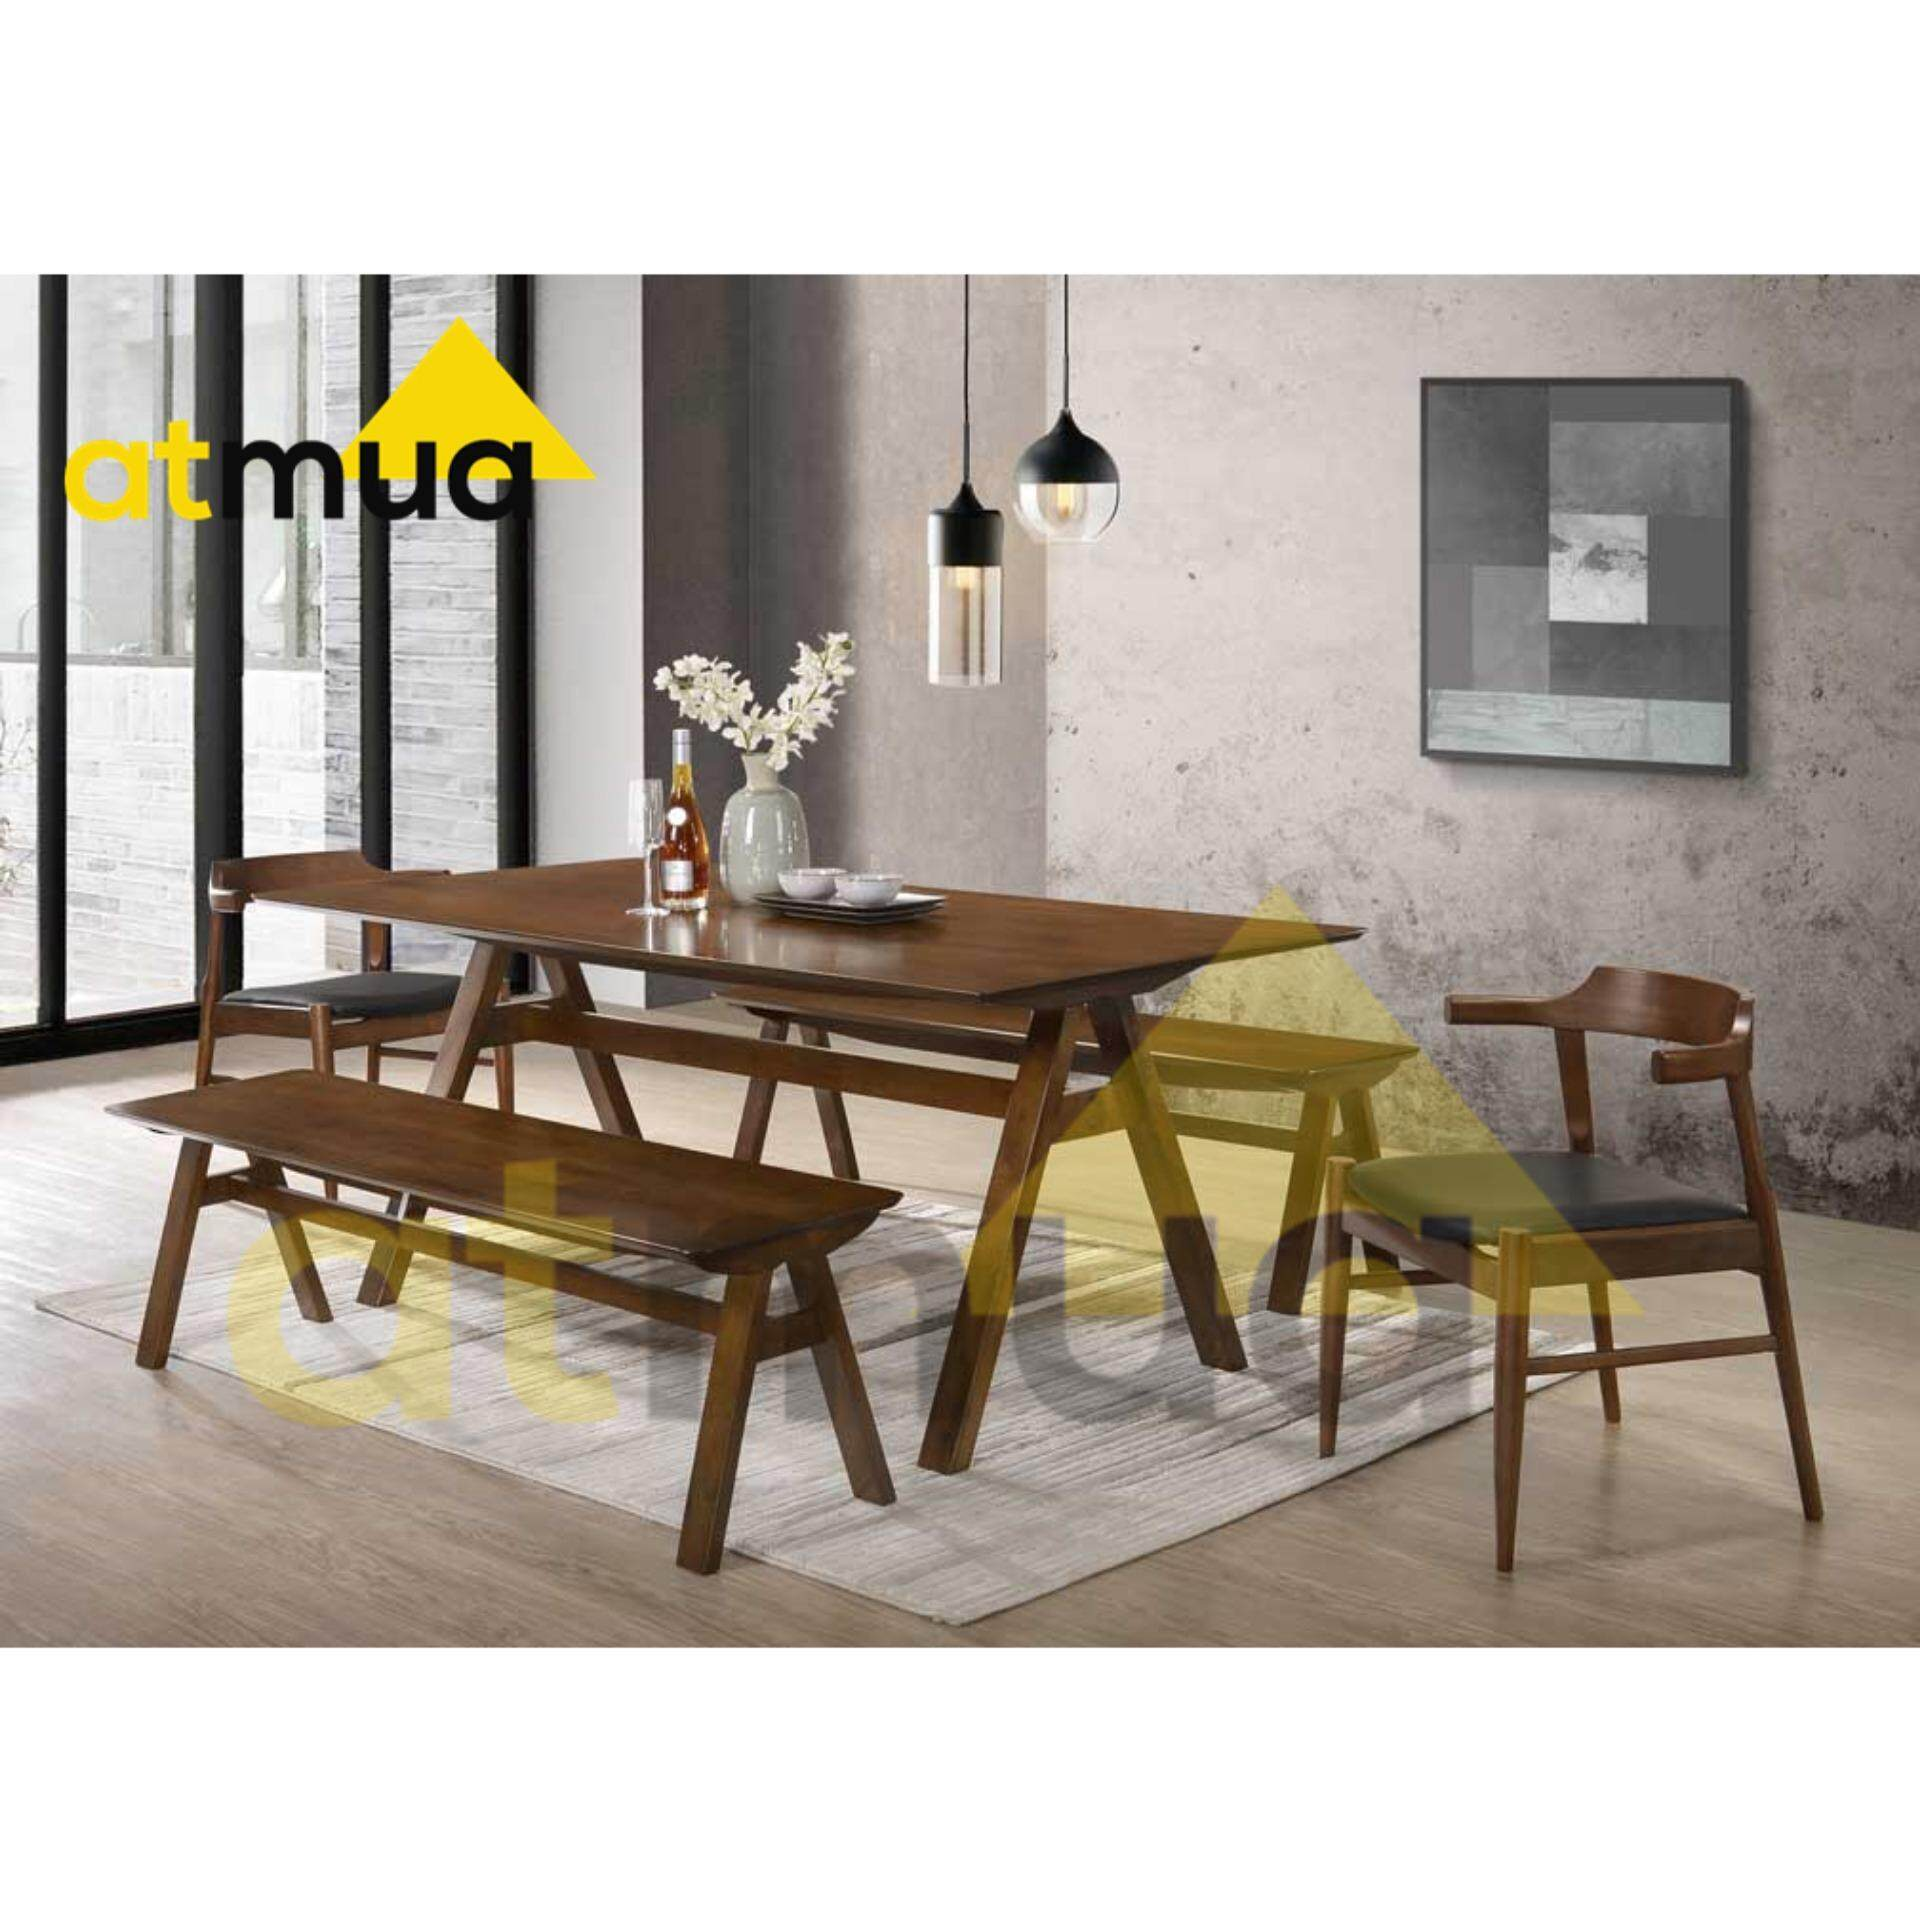 Atmua Vivo Dining Set (1 Table + 2 Bench Chair + 2 Chair) [Full Solid Rubber Wood] 6 Feet Length *Suitable For Caf  8 Seater